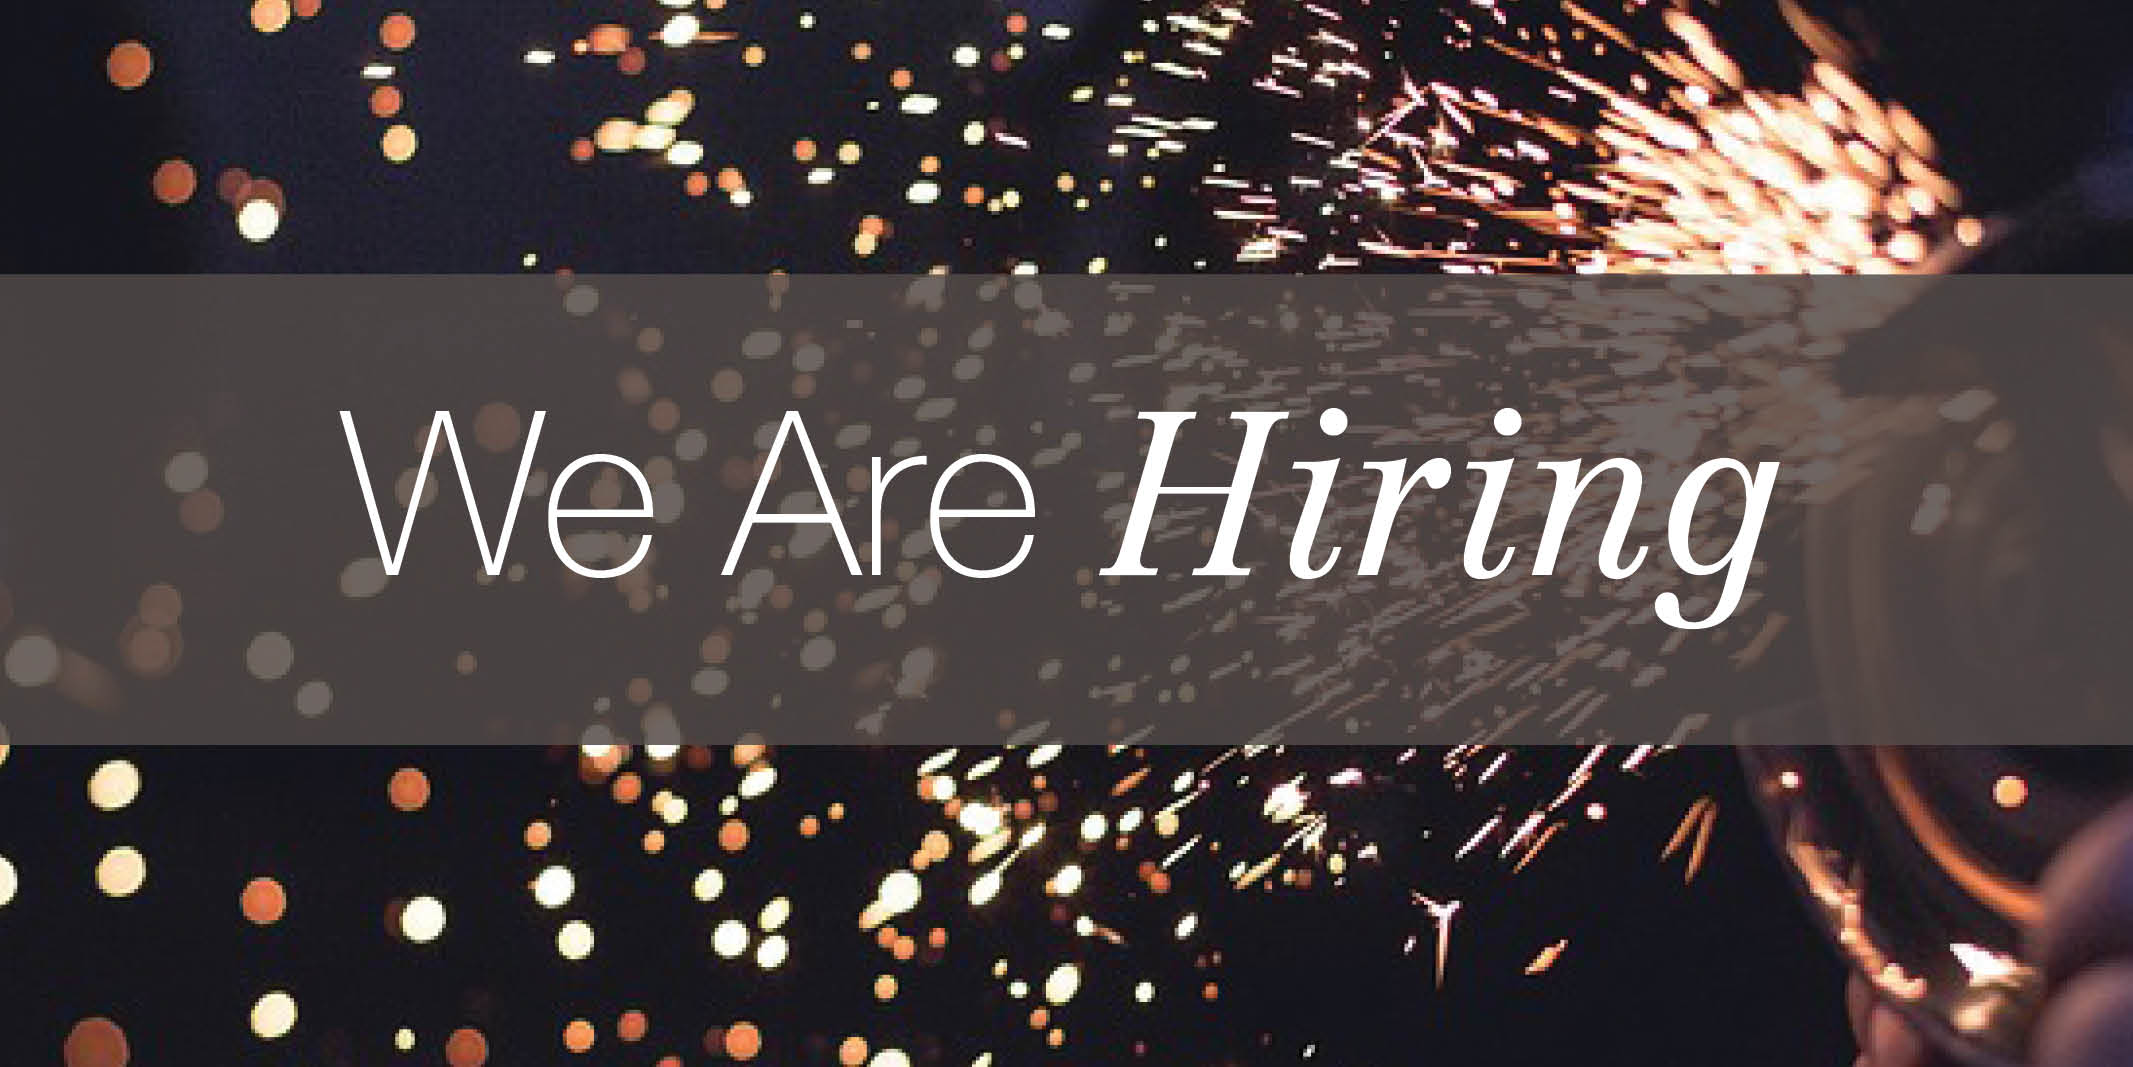 We Are Hiring Commercial Maintenance Technician Needed